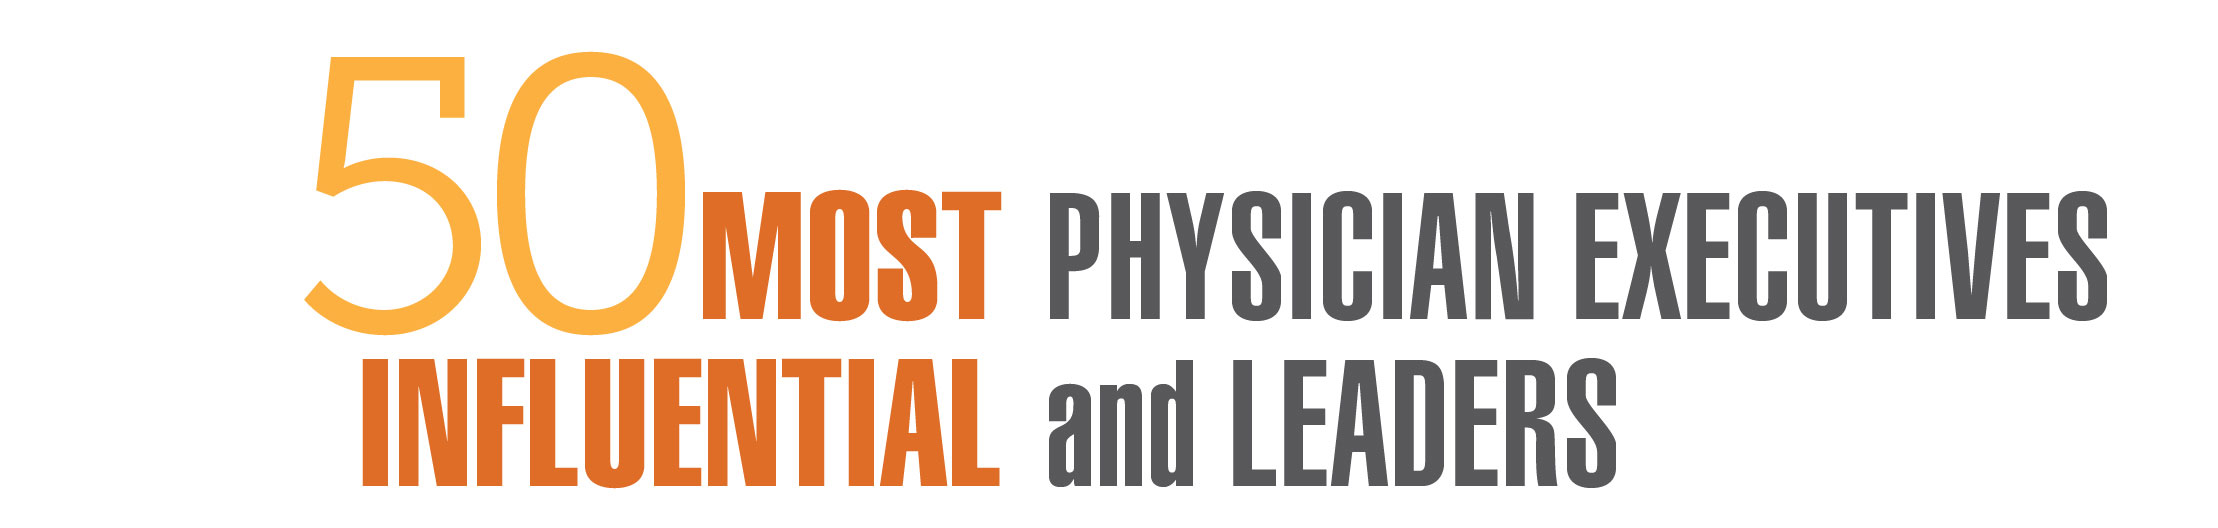 50 Most Influential Physician Executives and Leaders - 2015